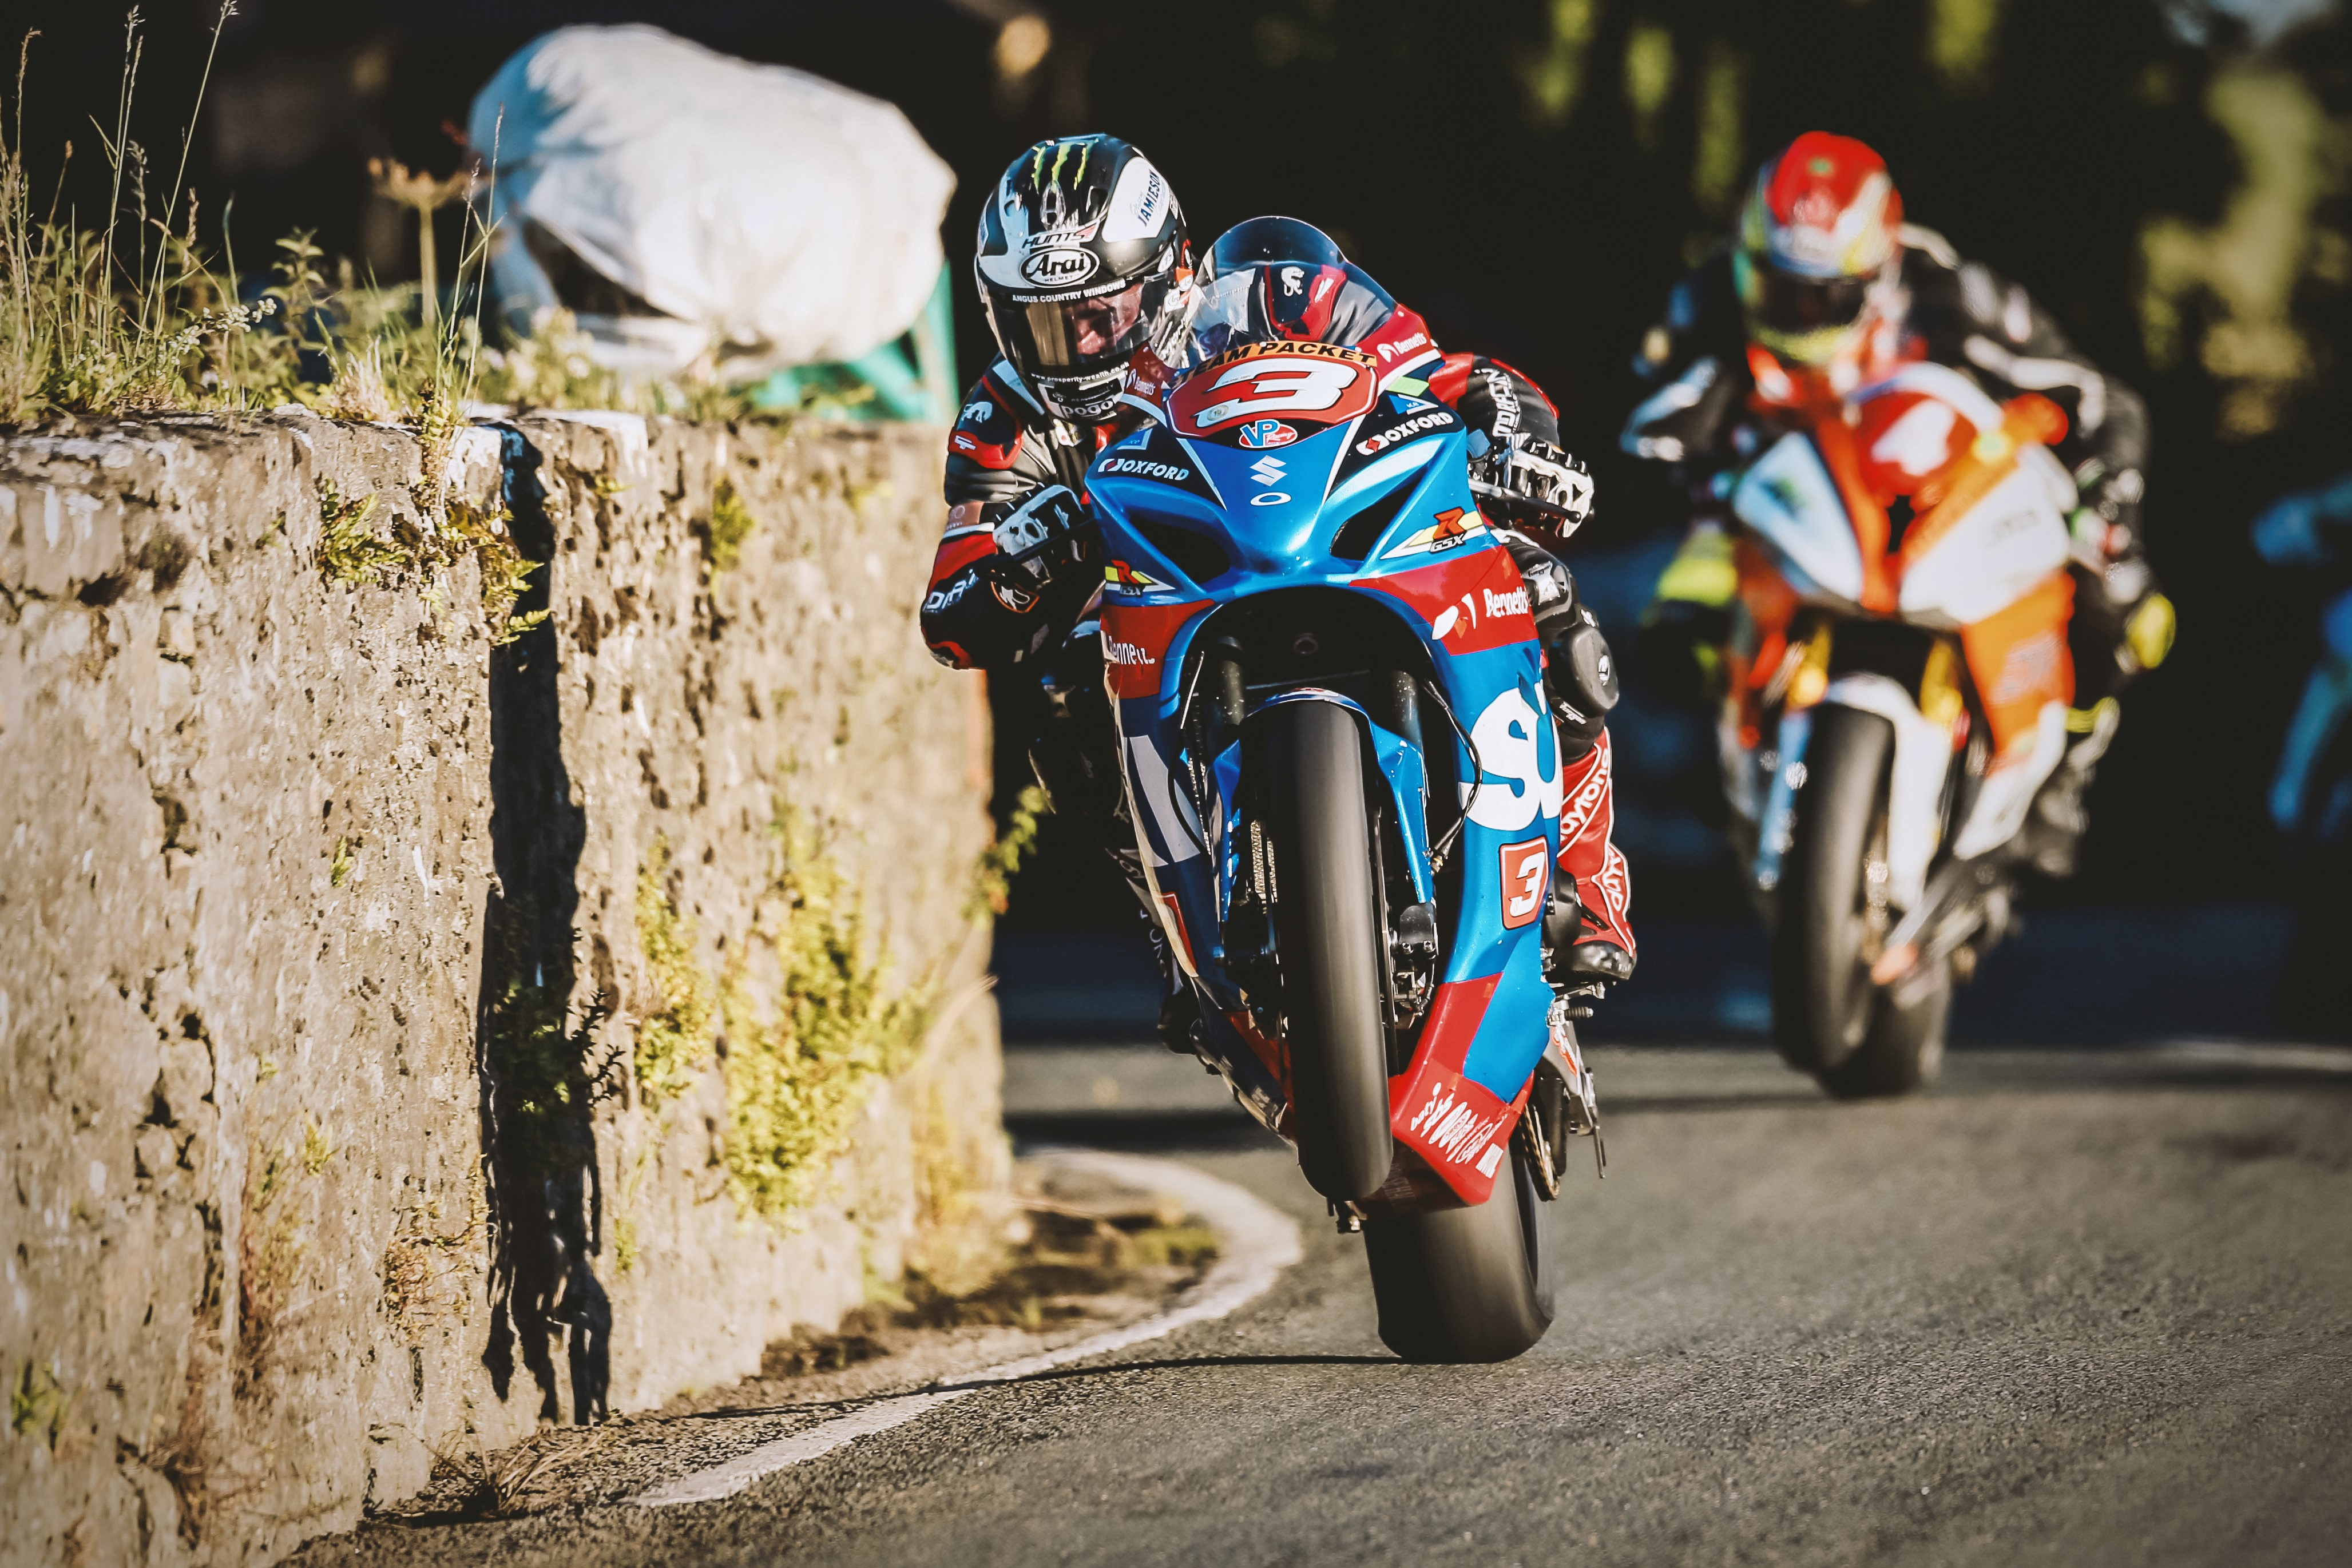 Hat-trick hero Dunlop takes three wins for Bennetts Suzuki at Southern 100 road races